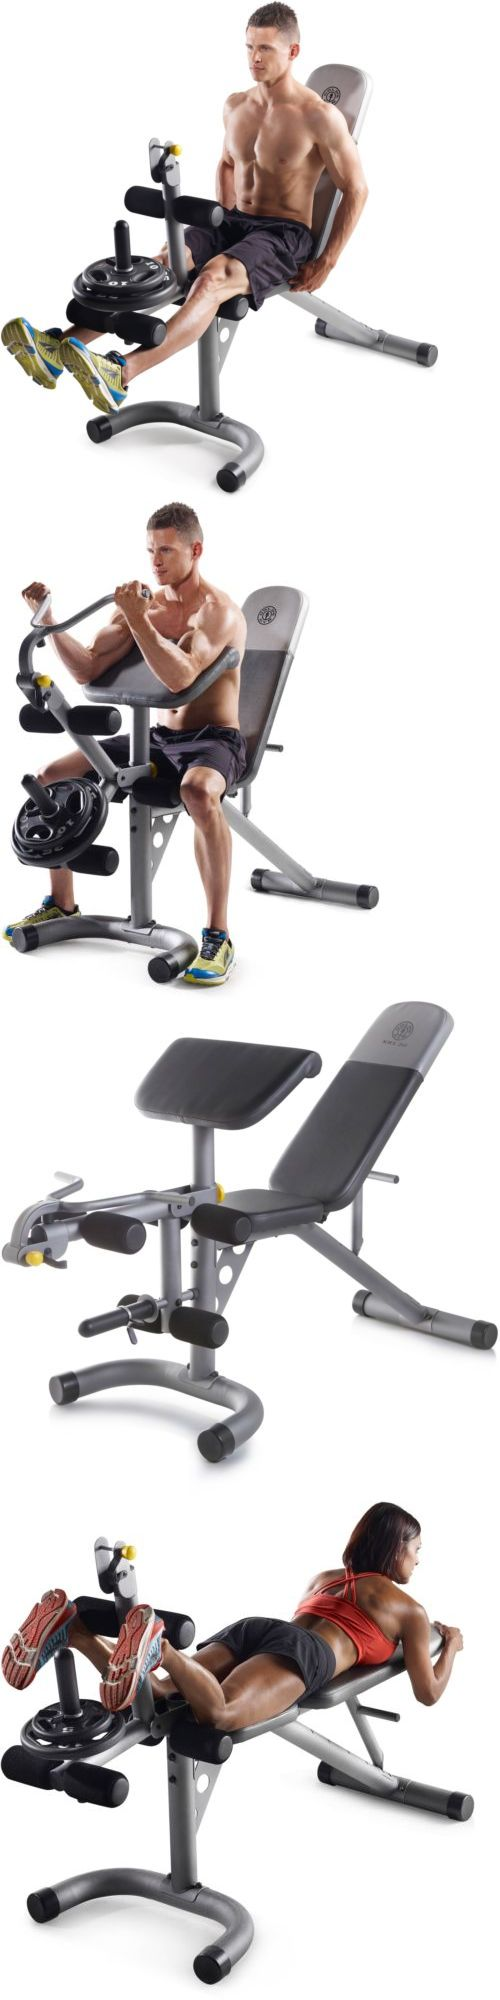 Benches 15281: Golds Gym Xrs 20 Olympic Workout Bench Weight Lifting Training Gym Station,New! BUY IT NOW ONLY: $109.29